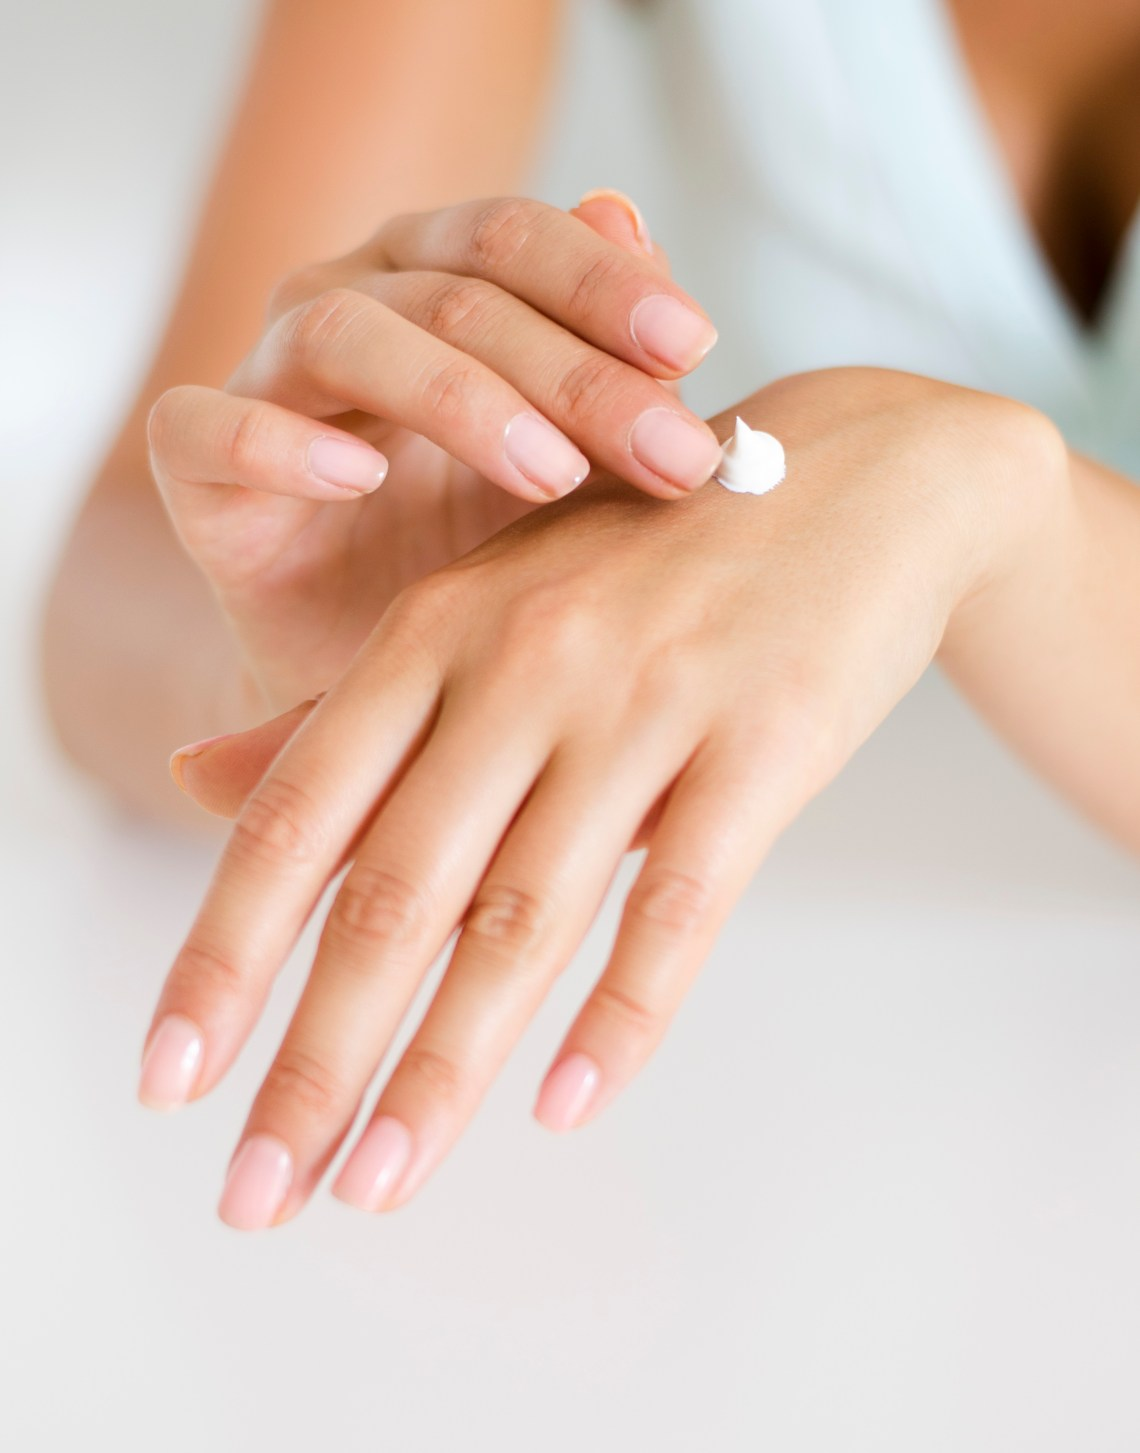 woman rubbing lotion on eczema